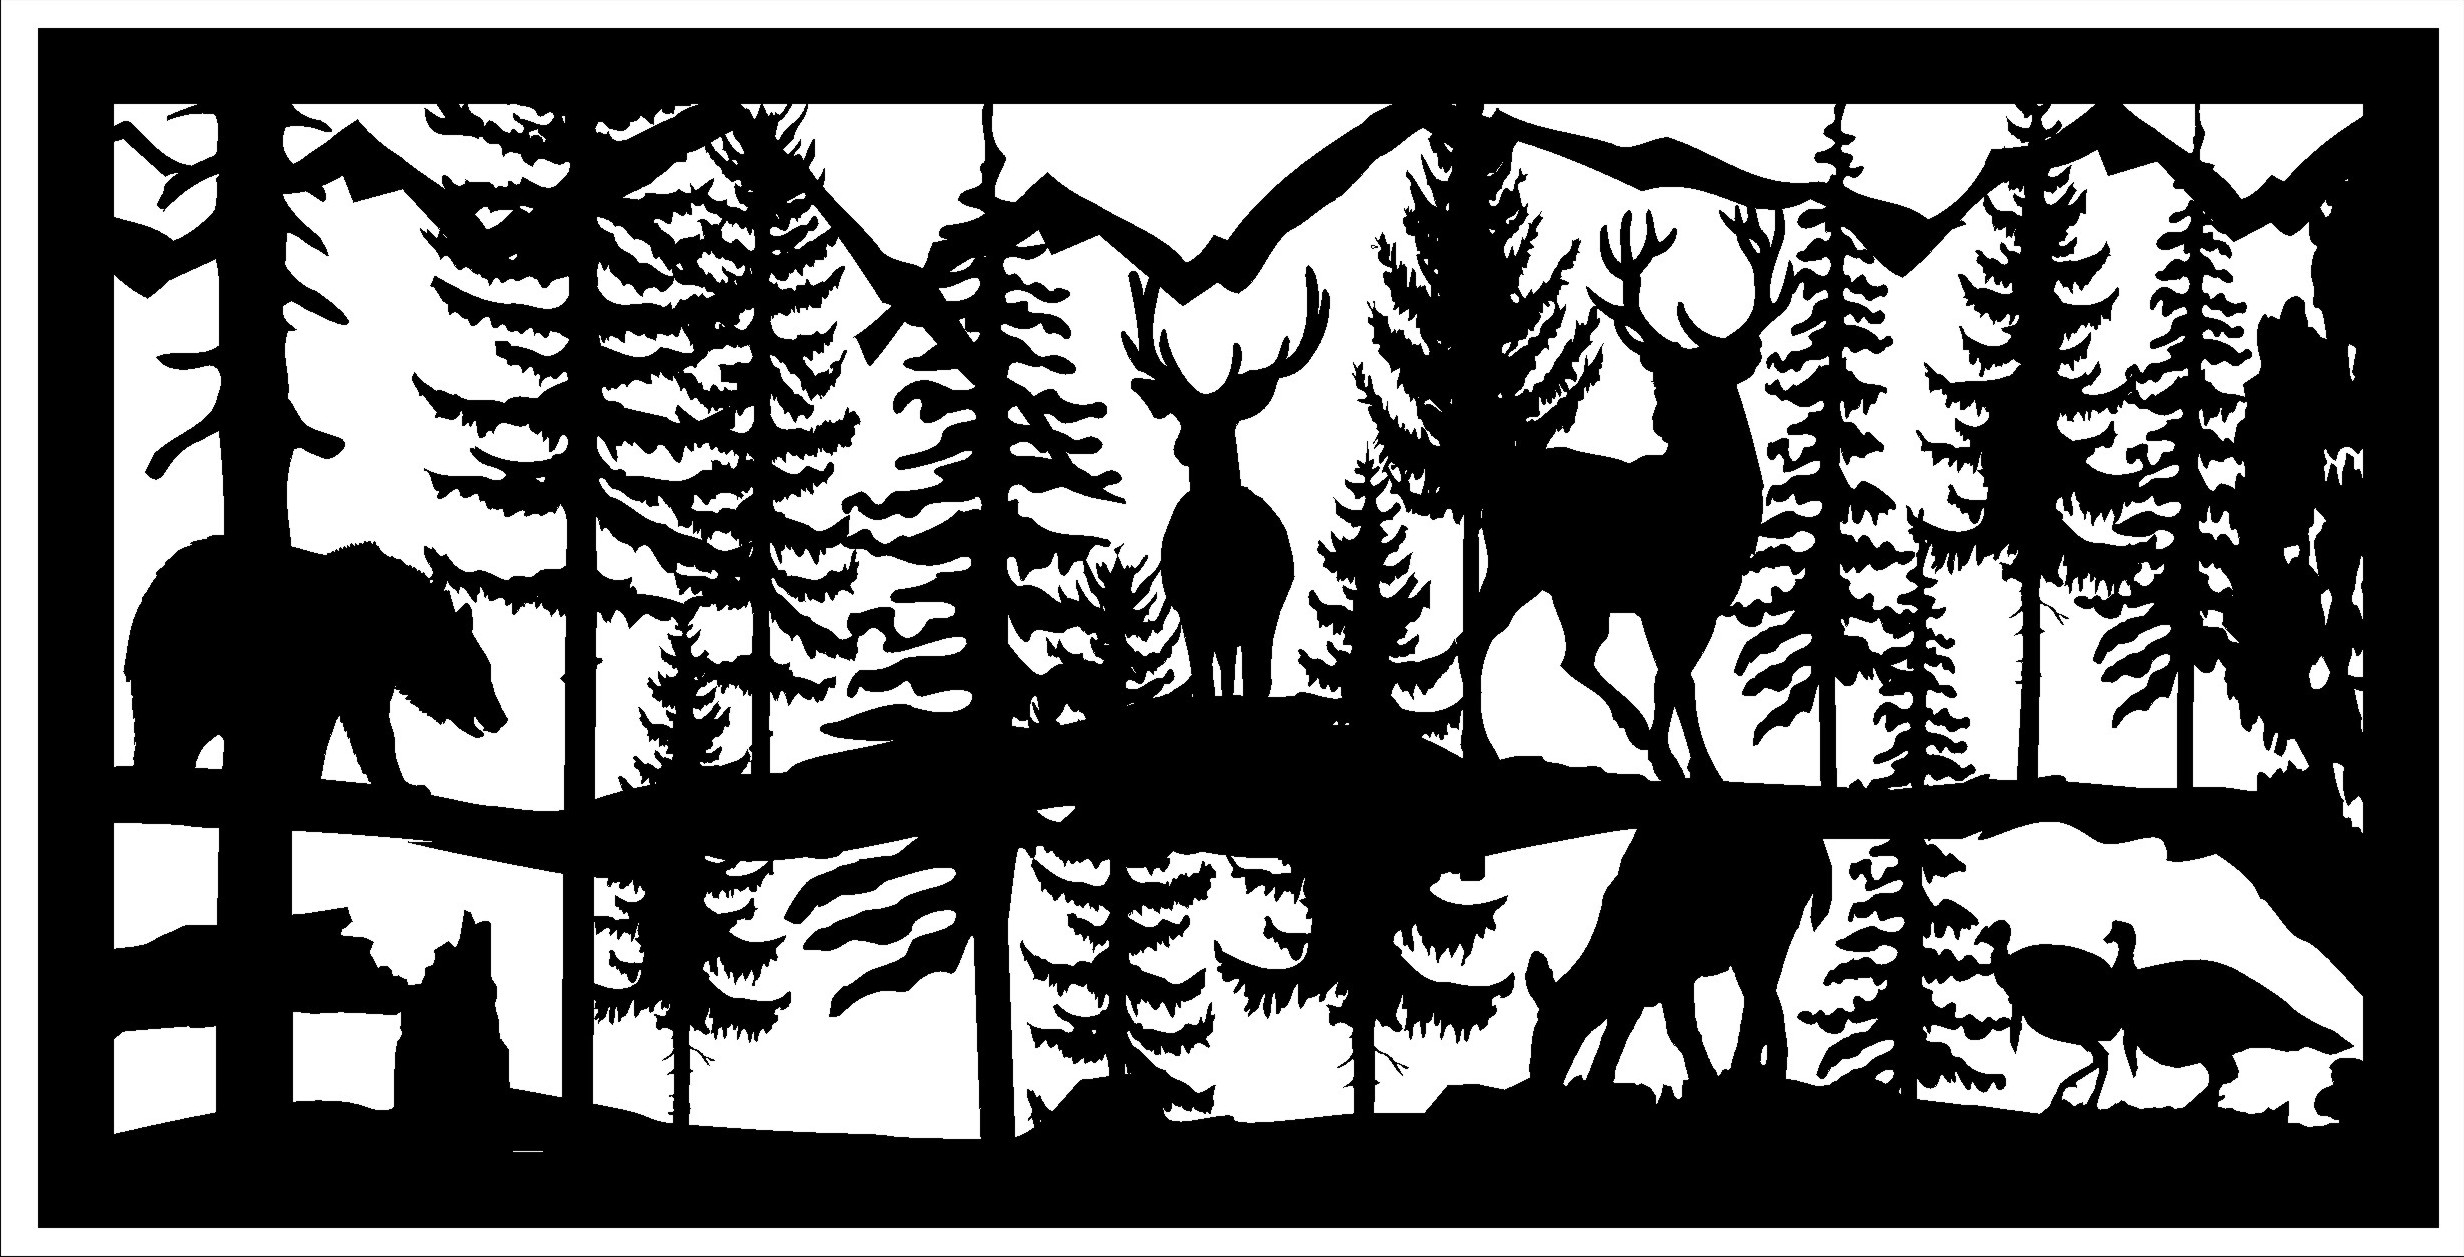 24 X 48 2 Turkeys 2 Bucks 1 Doe 1 Bear Plasma Art DXF File